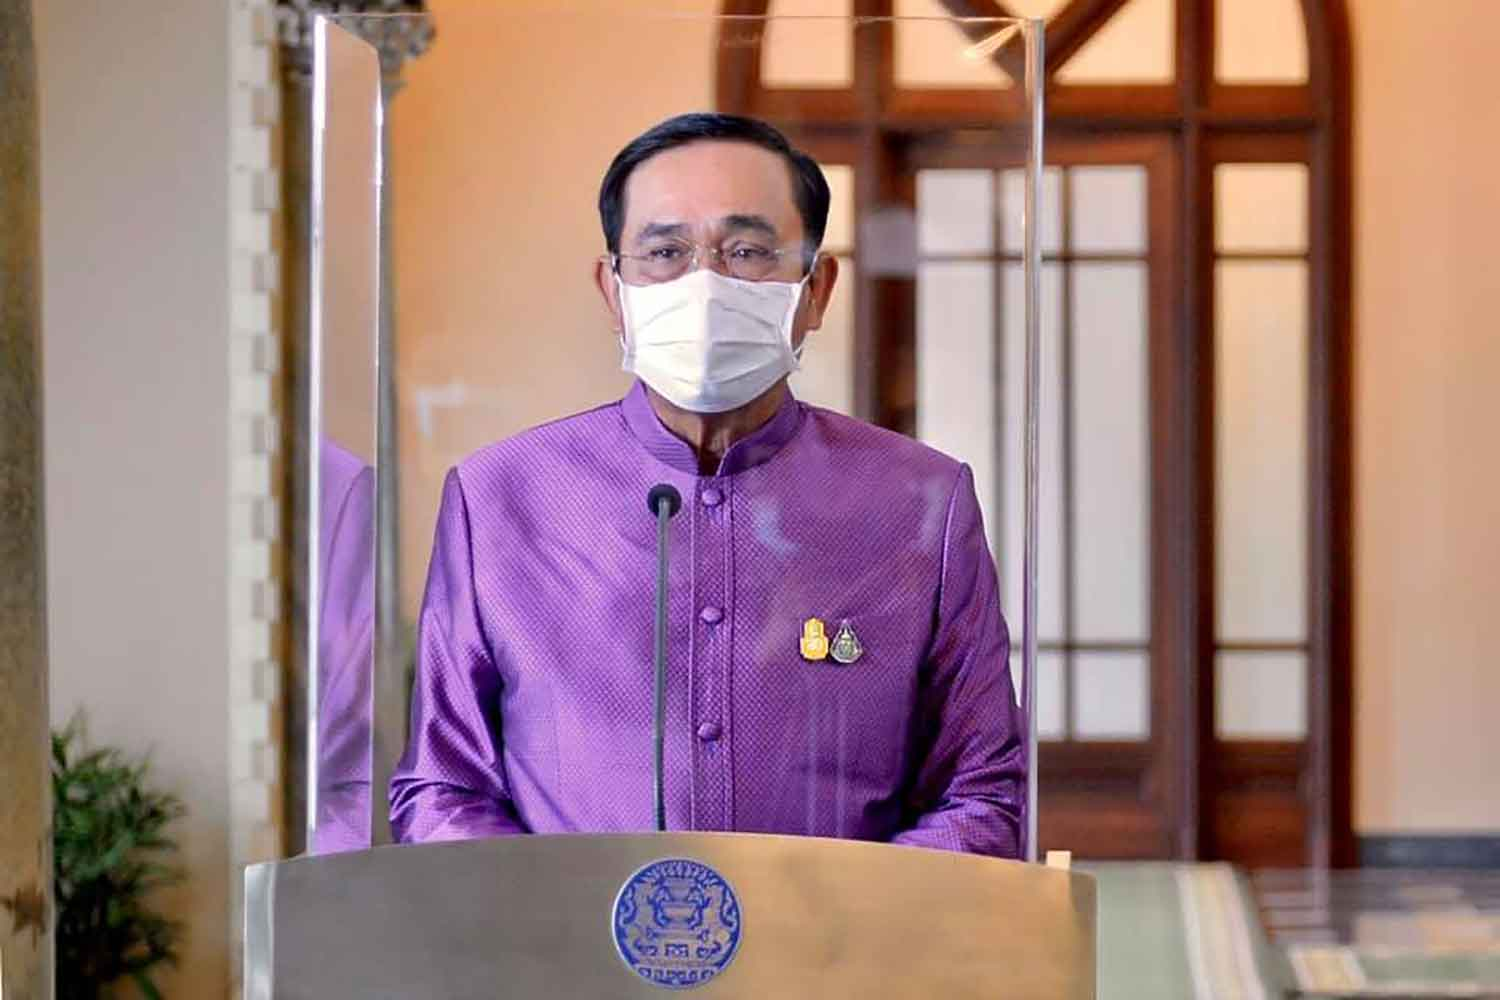 Prime Minister Prayut Chan-o-cha speaks to reporters at Government House in Bangkok on Tuesday. (Government House photo)